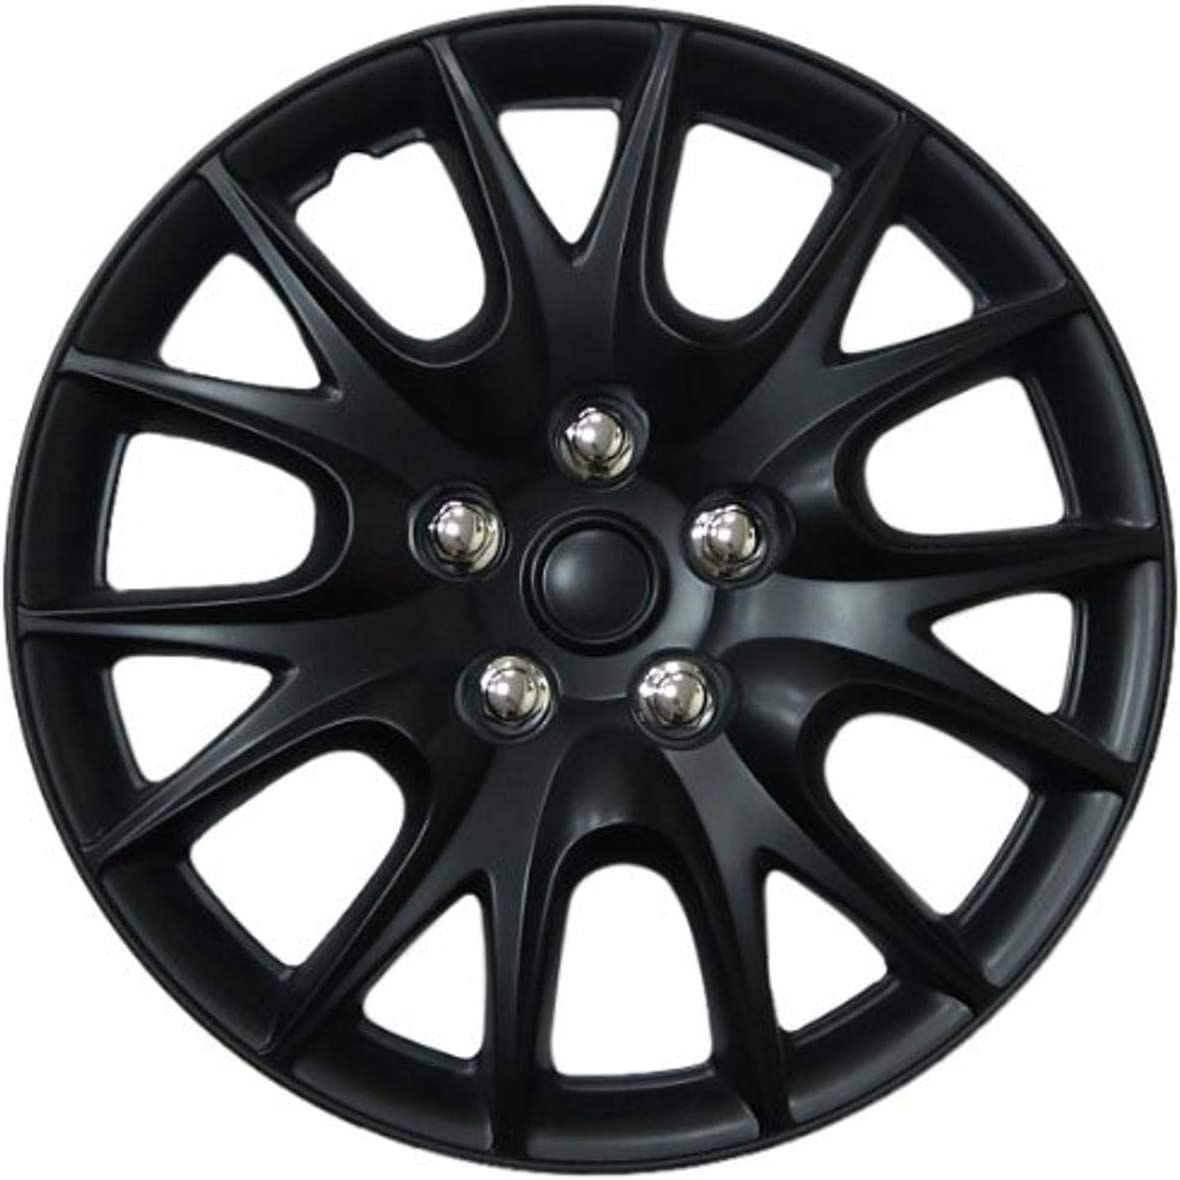 Drive Accessories KT-950-15MBK Chrysler Turisma Max 90% OFF Matte Direct stock discount 15